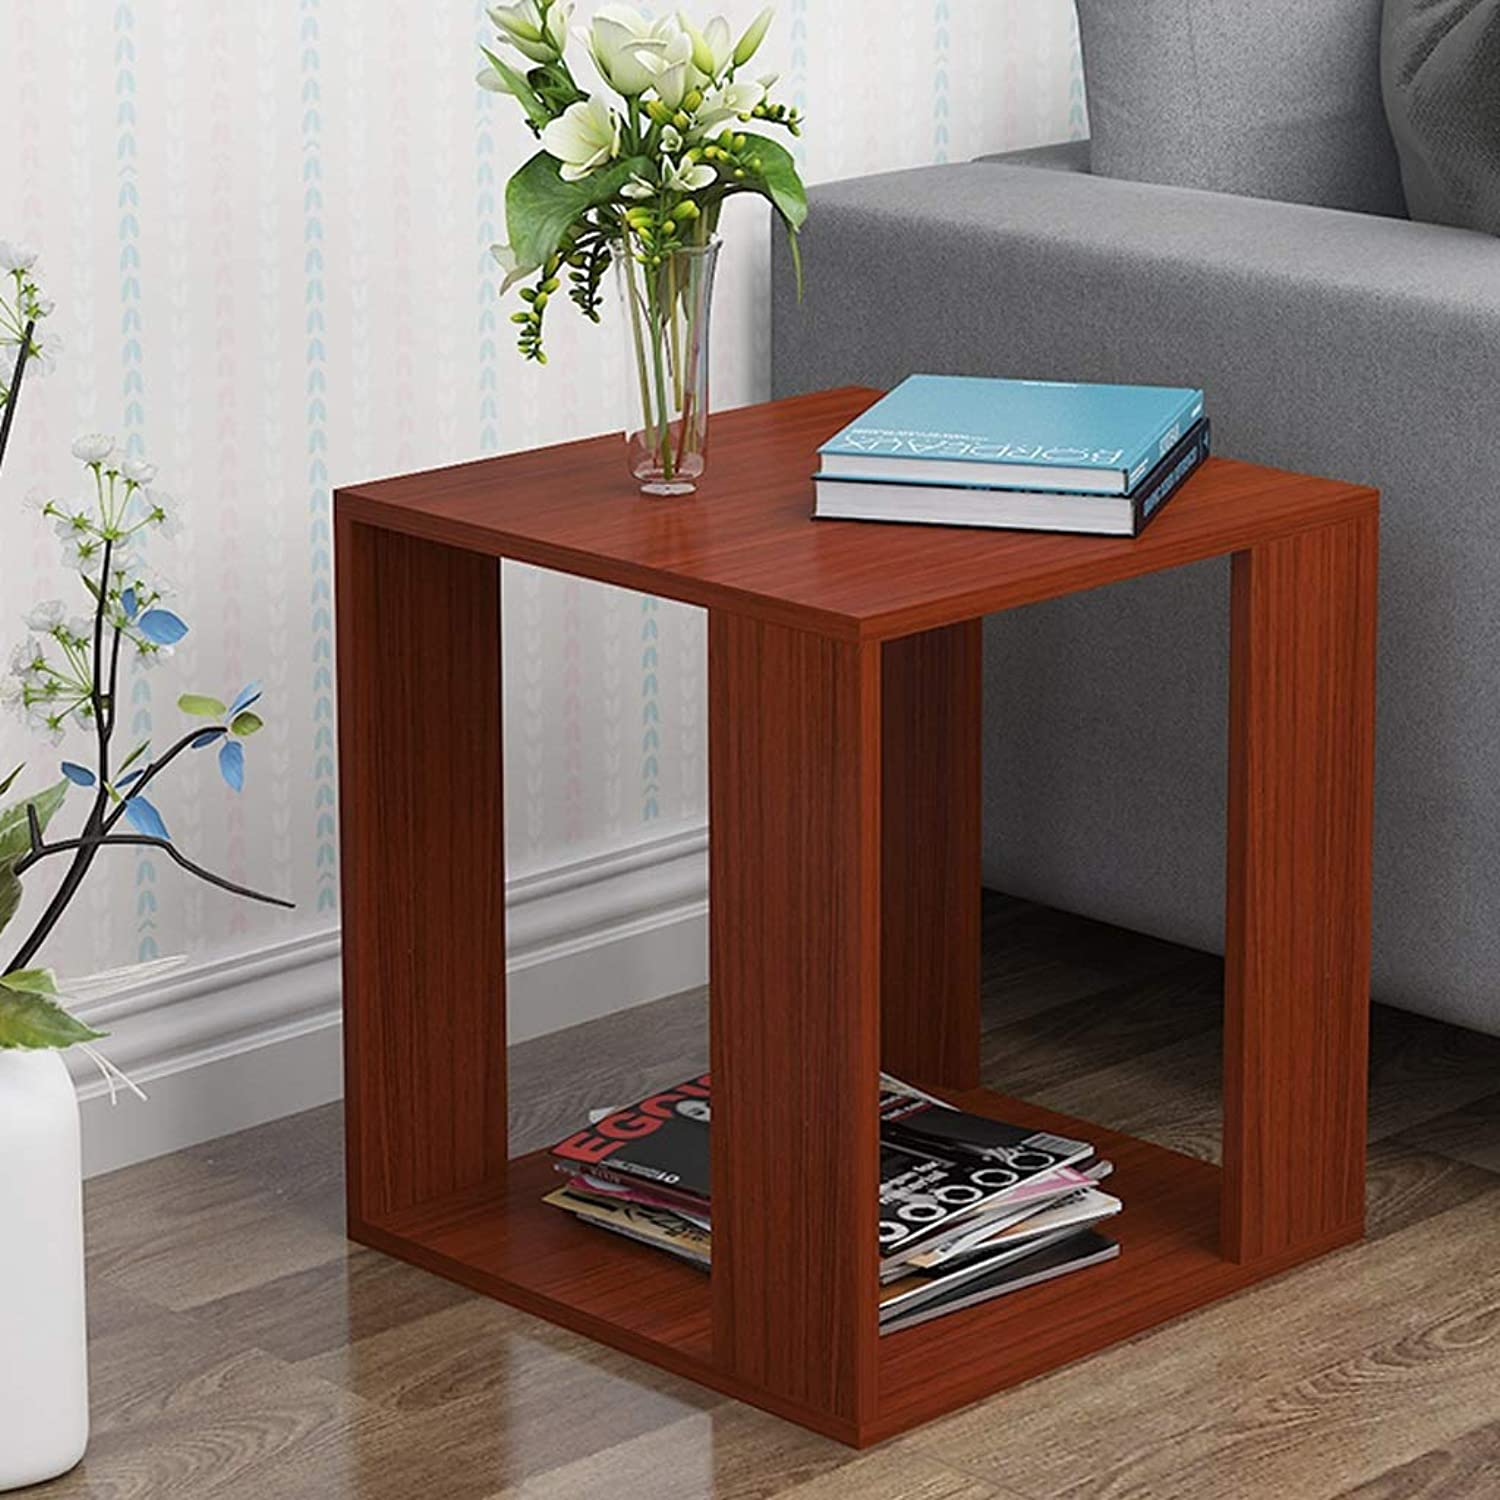 ZfgG Small Coffee Table Living Room Sofa Side Table Bedroom Bedside Table Small Square Table with Wheels (color   Teak color, Size   40x40x43cm)